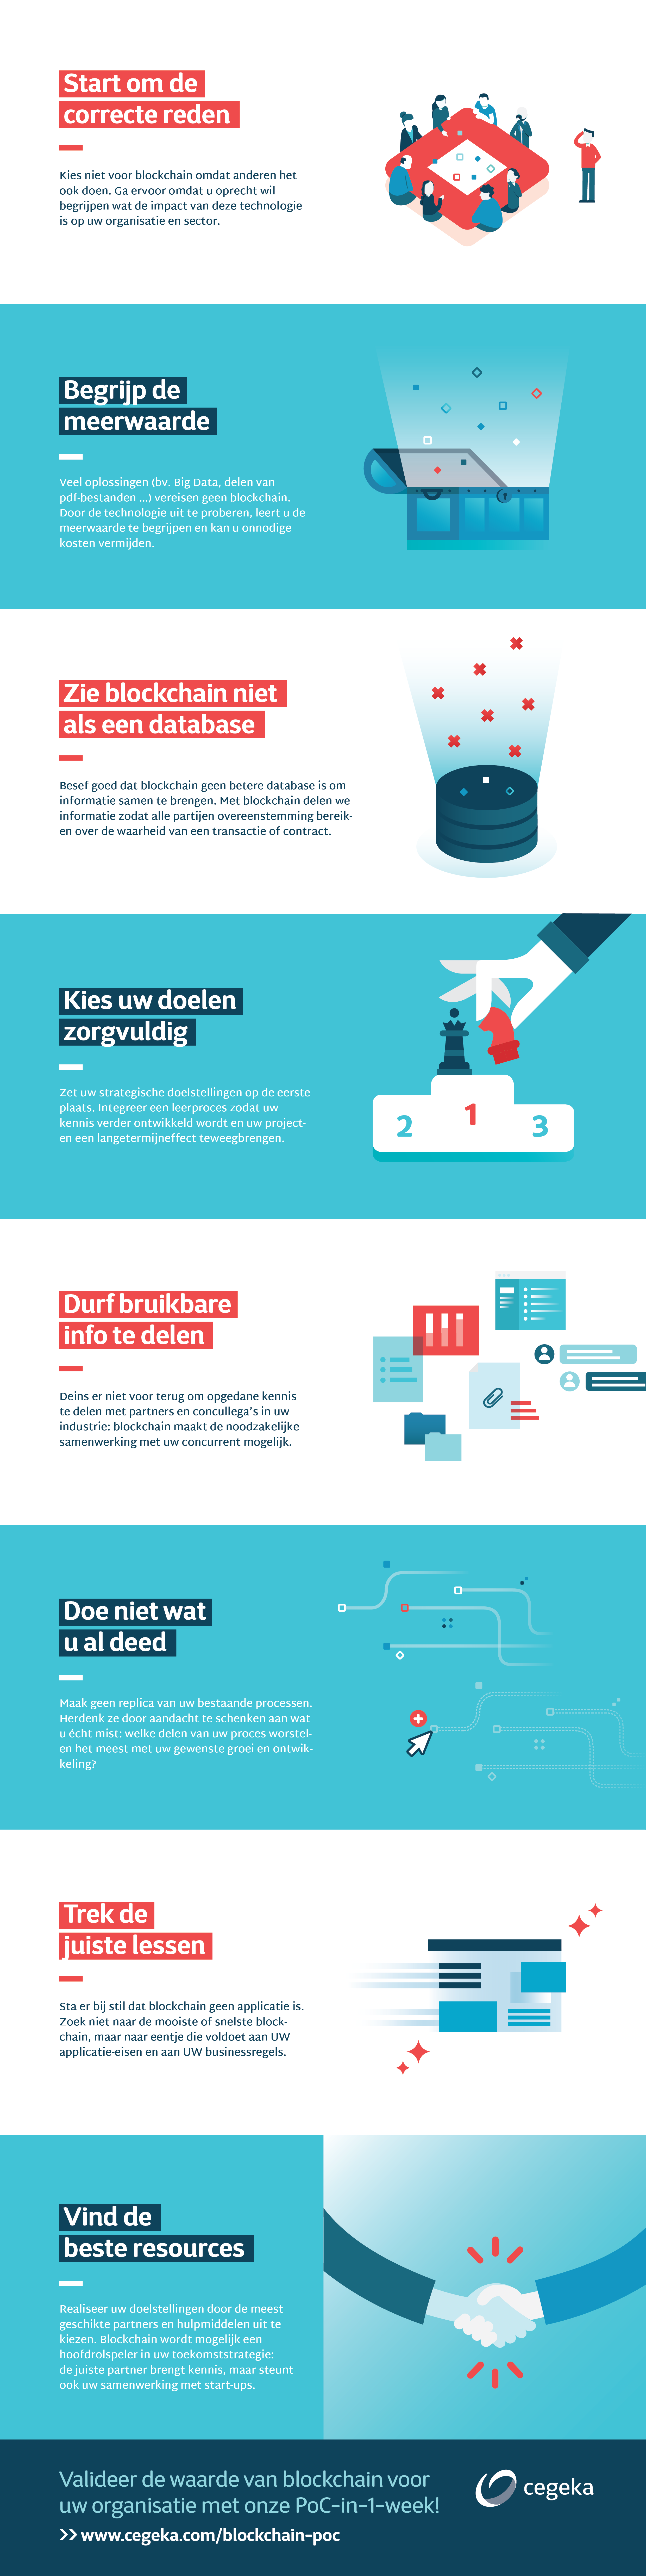 Blockchain_infographic_cropped_NL